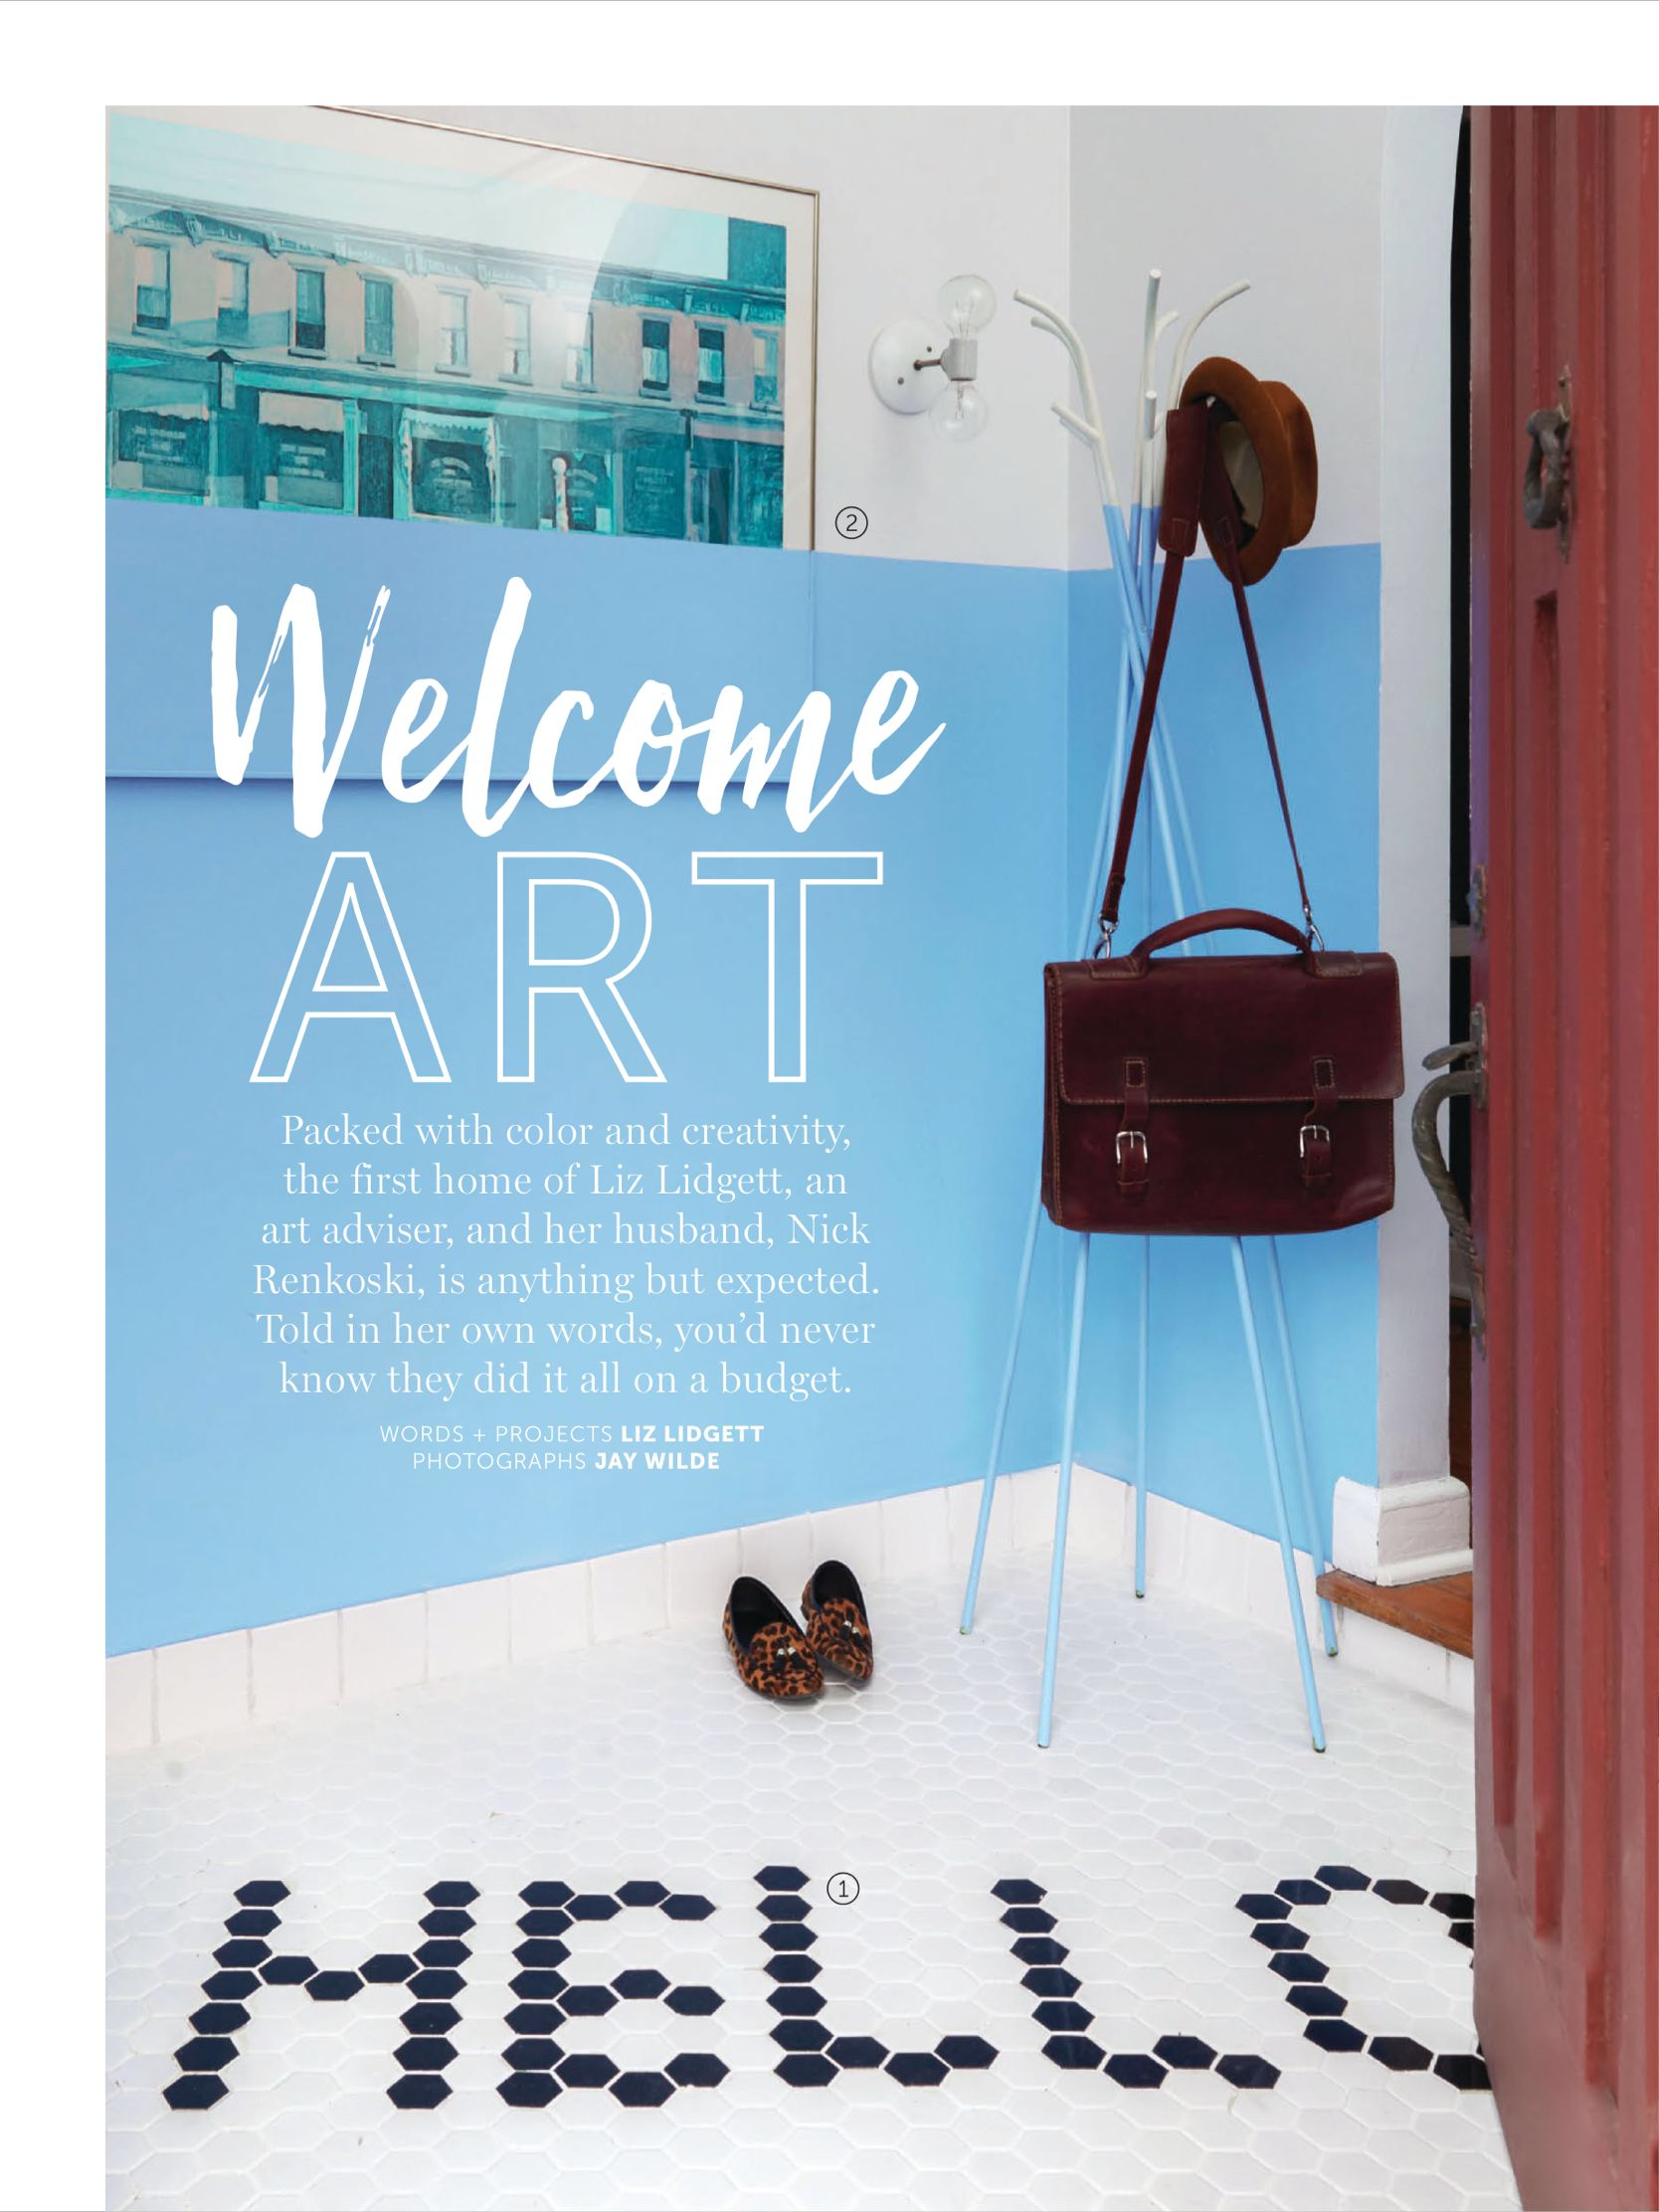 Welcome art from do it yourself magazine spring 2018 read it on welcome art from do it yourself magazine spring 2018 read it on the texture app unlimited access to 200 top magazines design pinterest app solutioingenieria Gallery